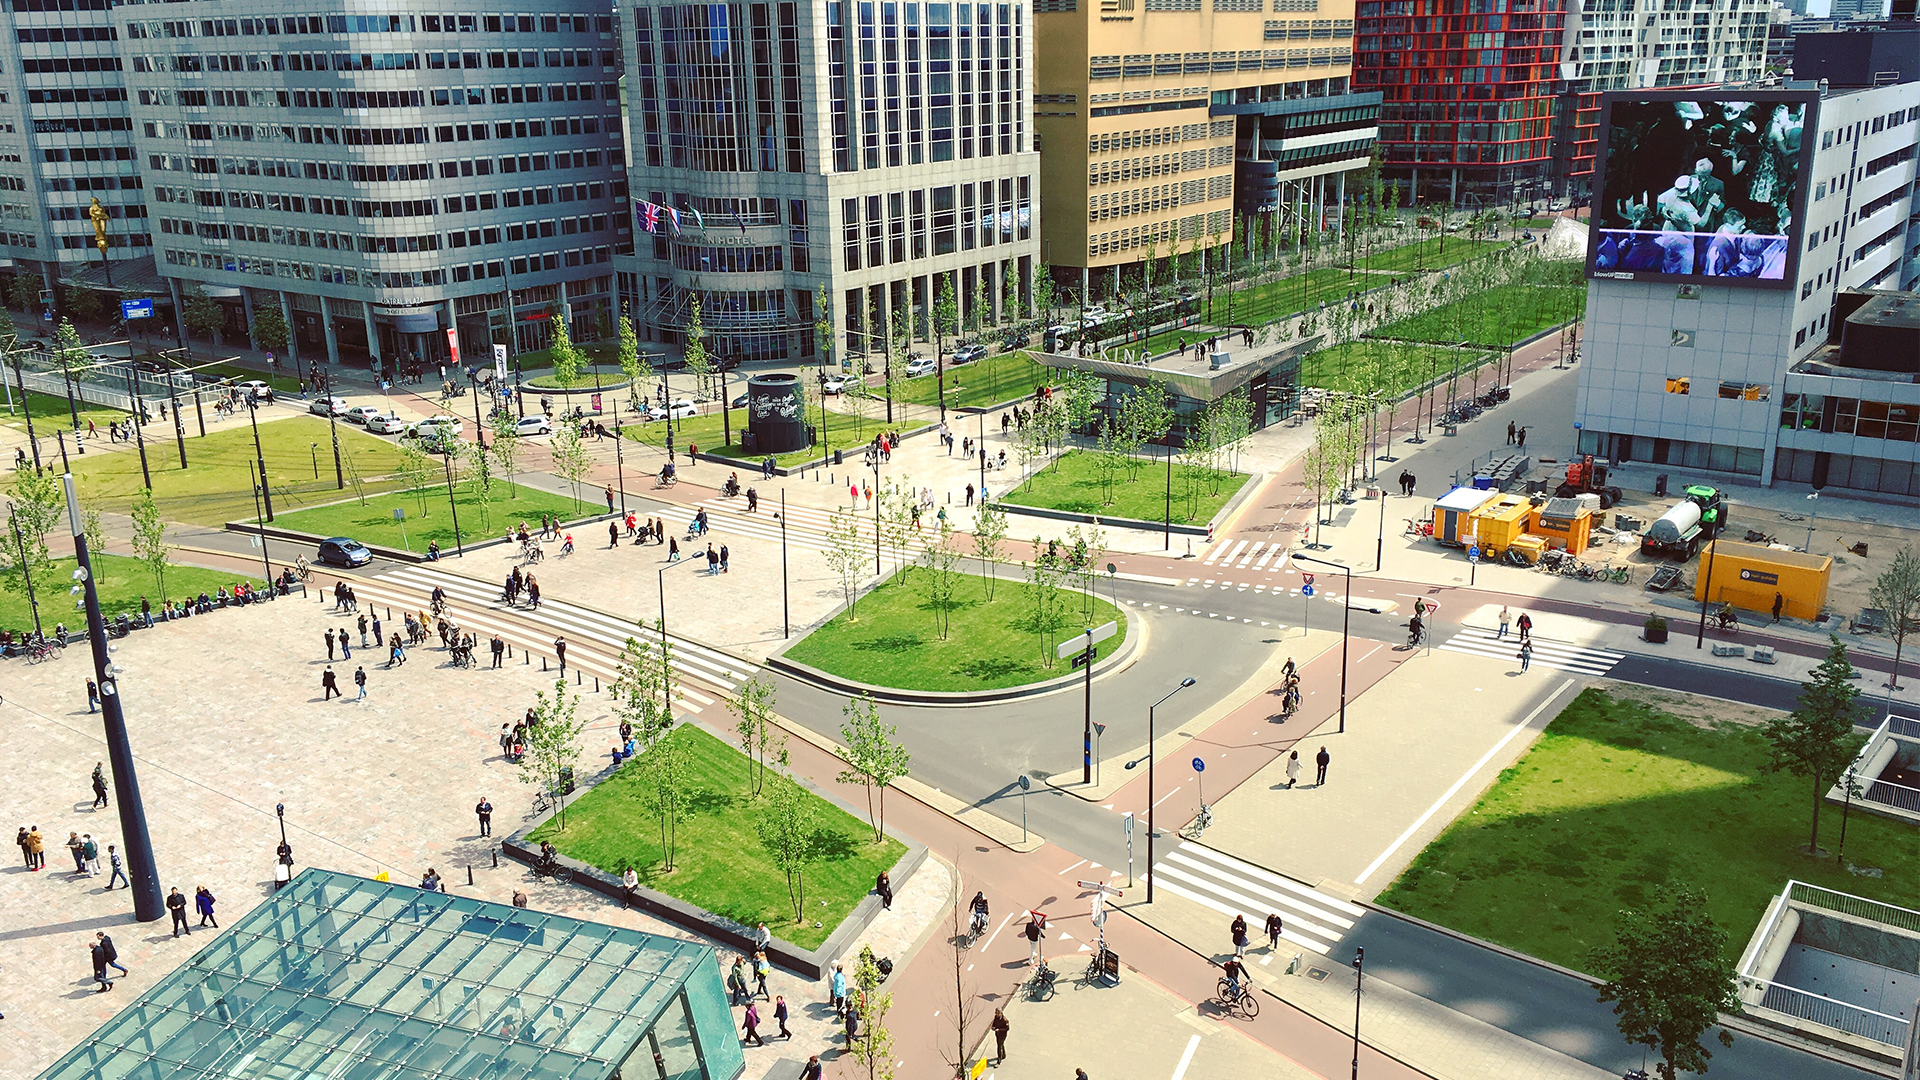 Smart technology for healthy urban landscapes